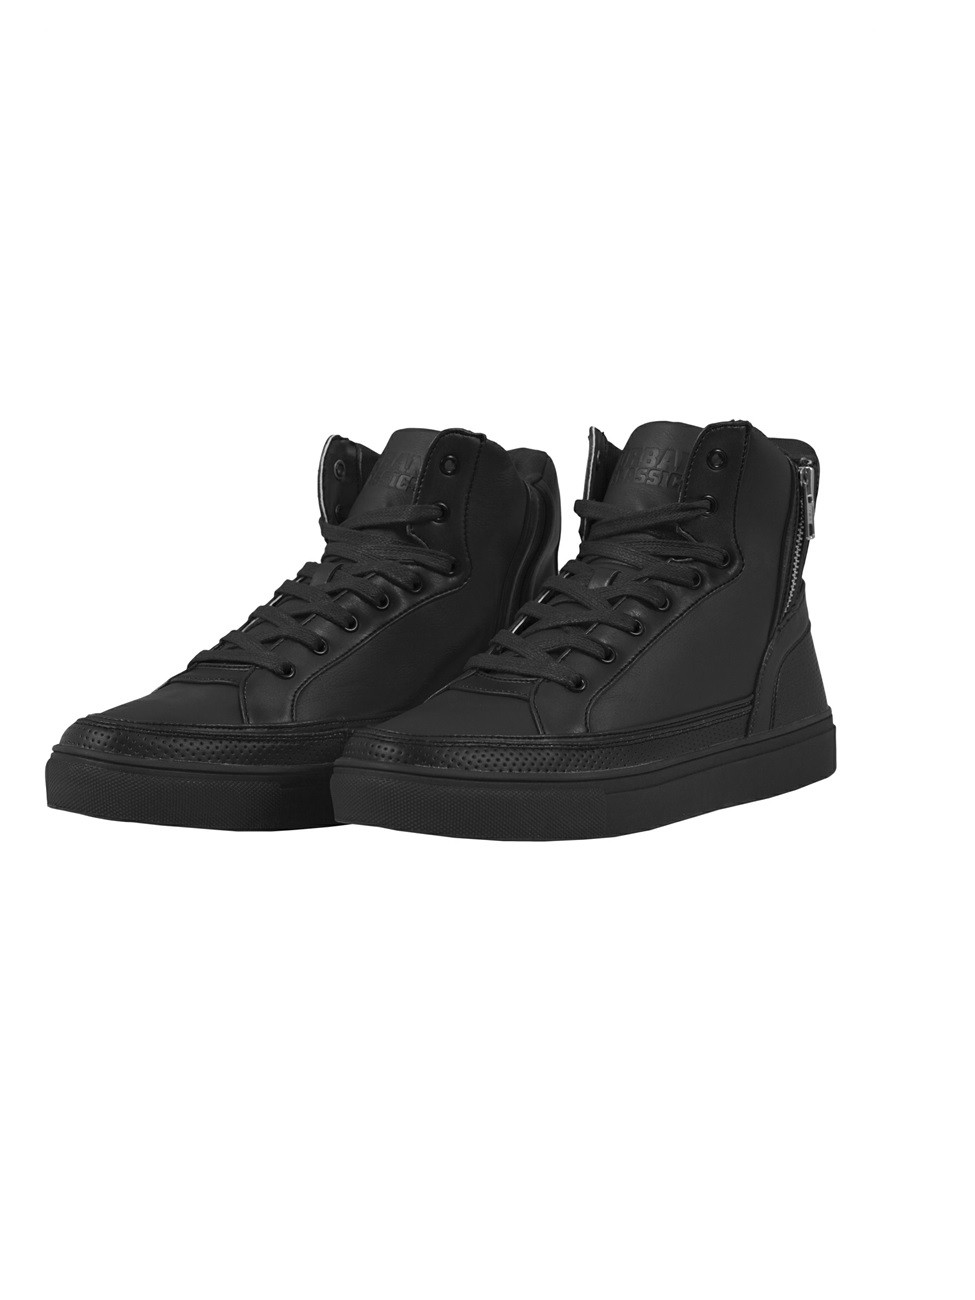 urban-classics-unisex-zipper-high-top-schuhe